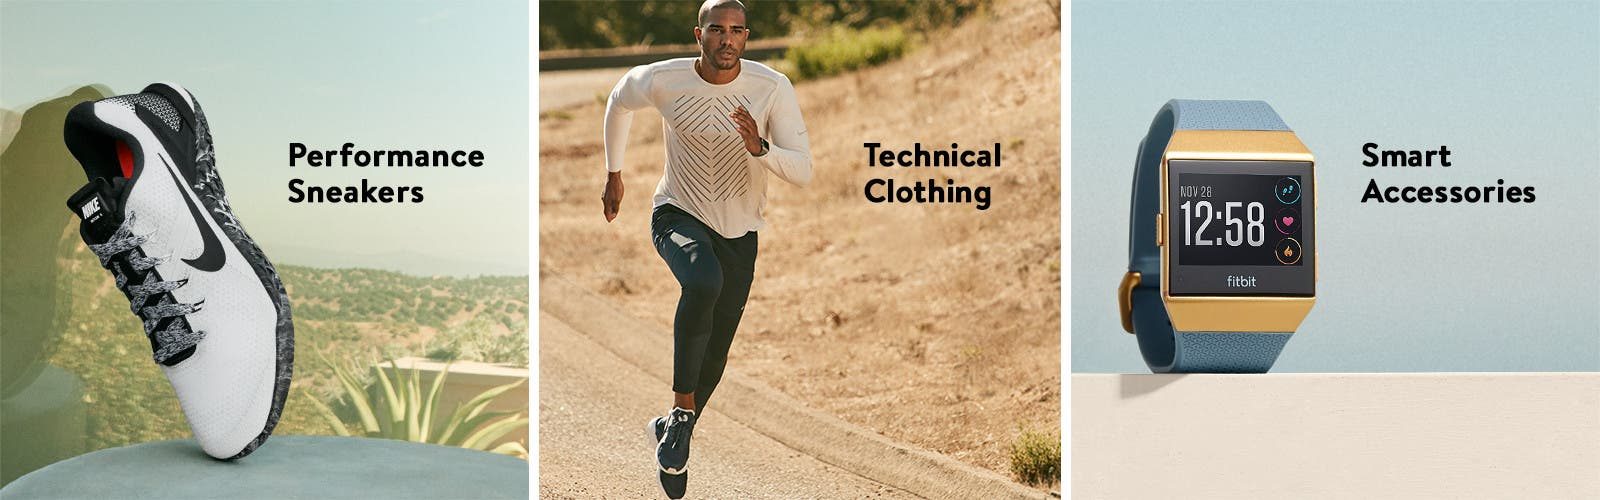 Performance sneakers, technical clothing and smart accessories.